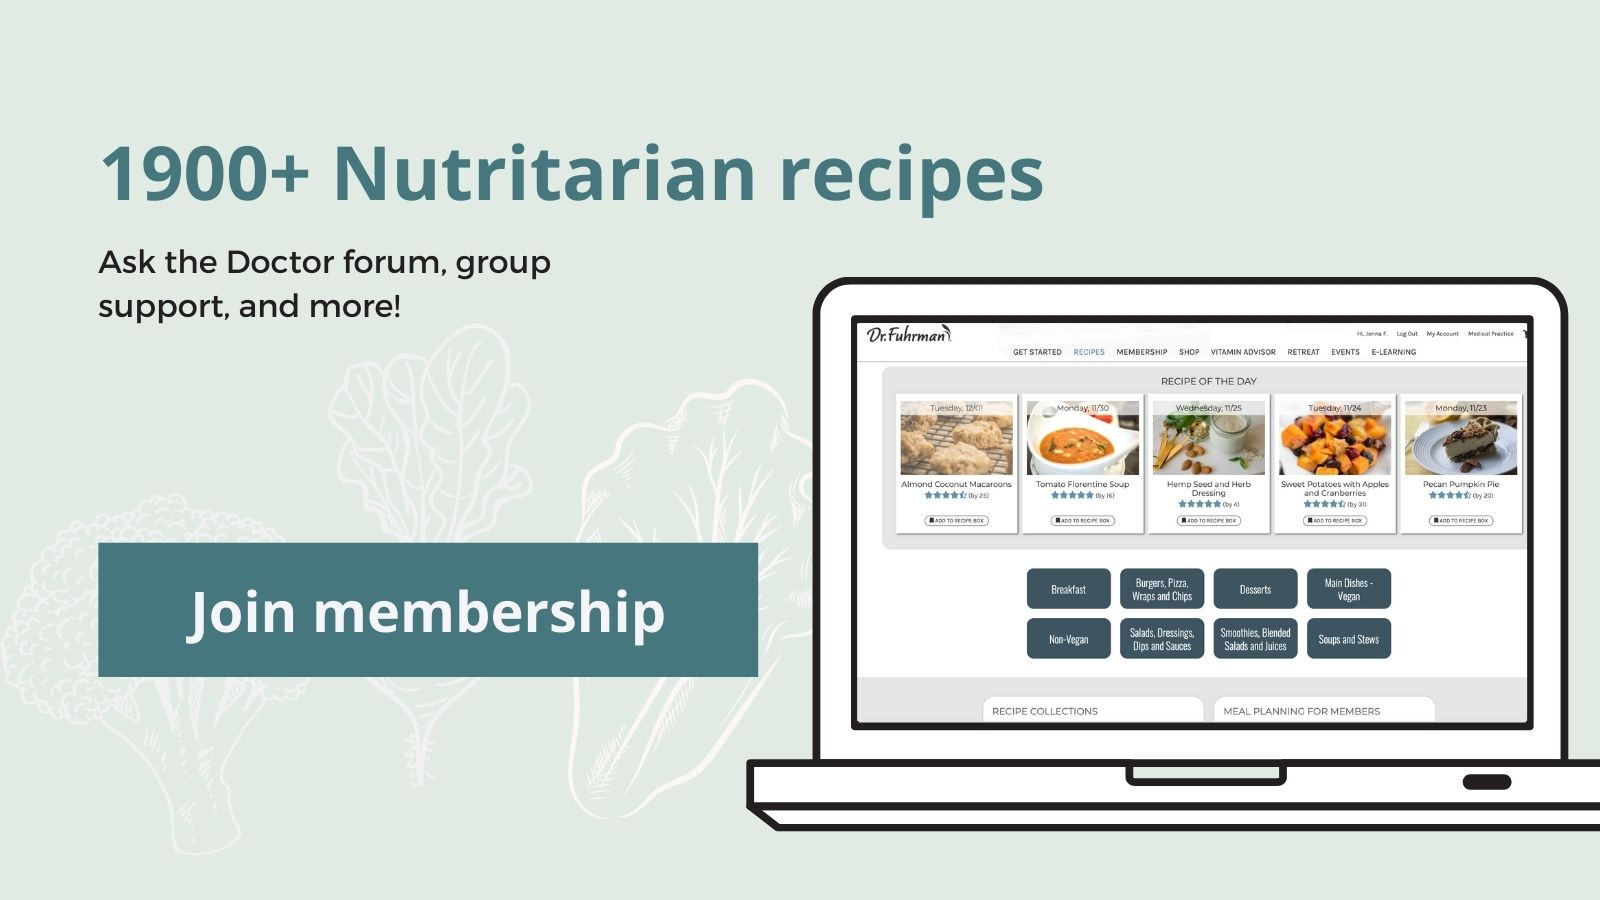 Membership gives you access to 1900+ recipes